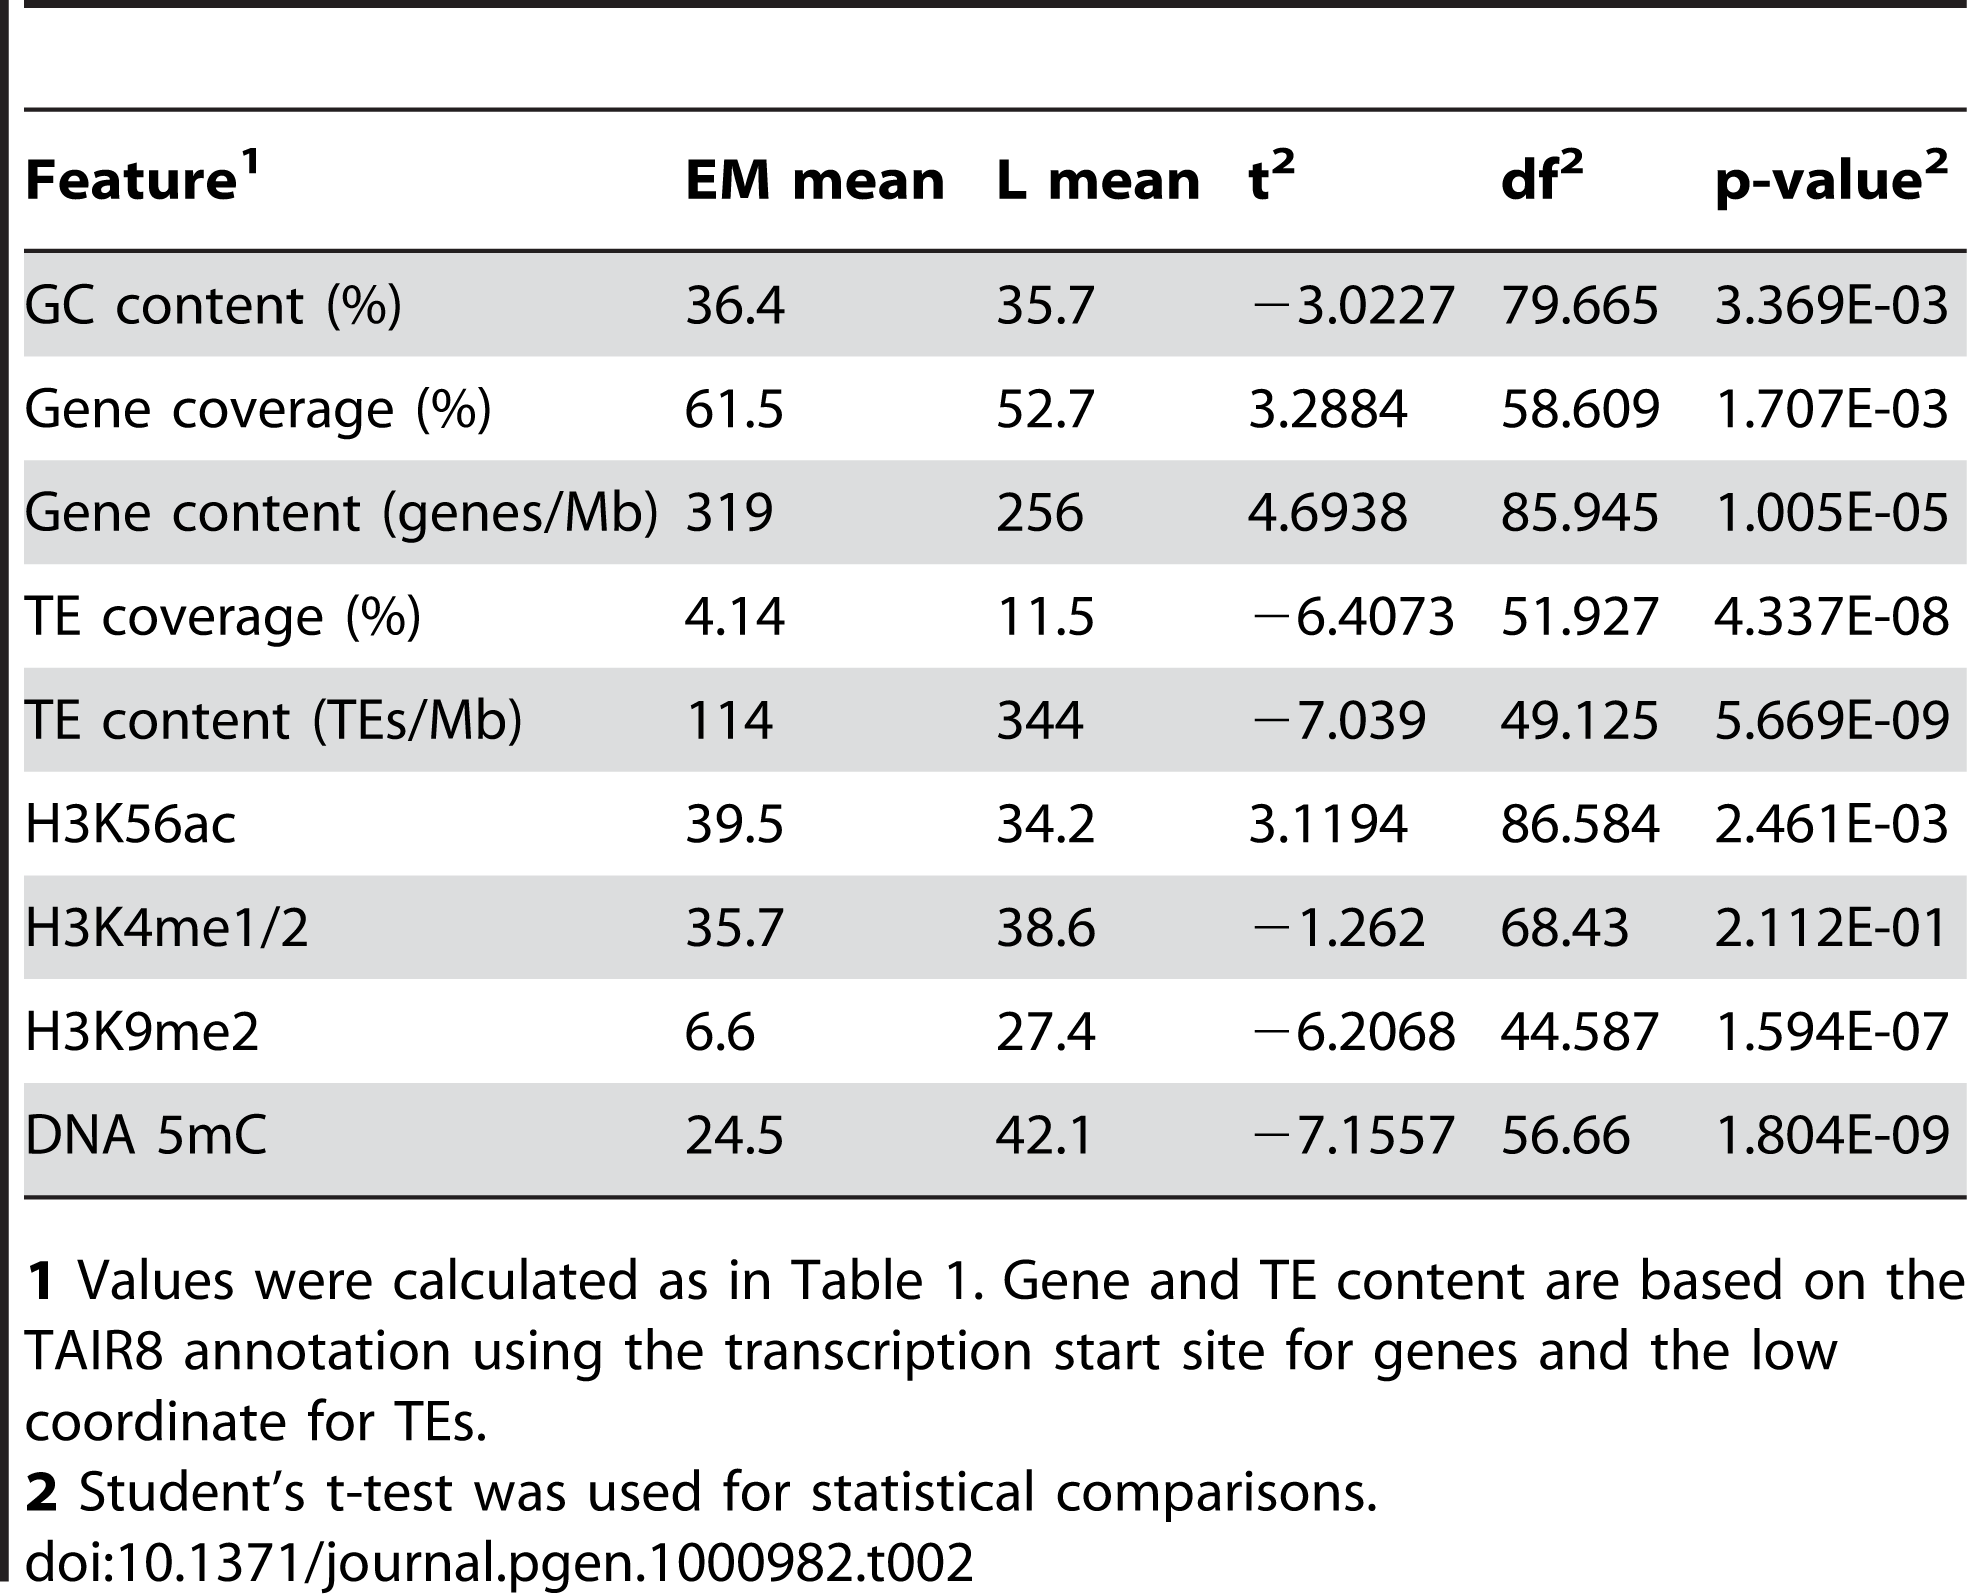 Analysis of genetic and epigenetic features for EM and L replicons for the long arm of chr4.